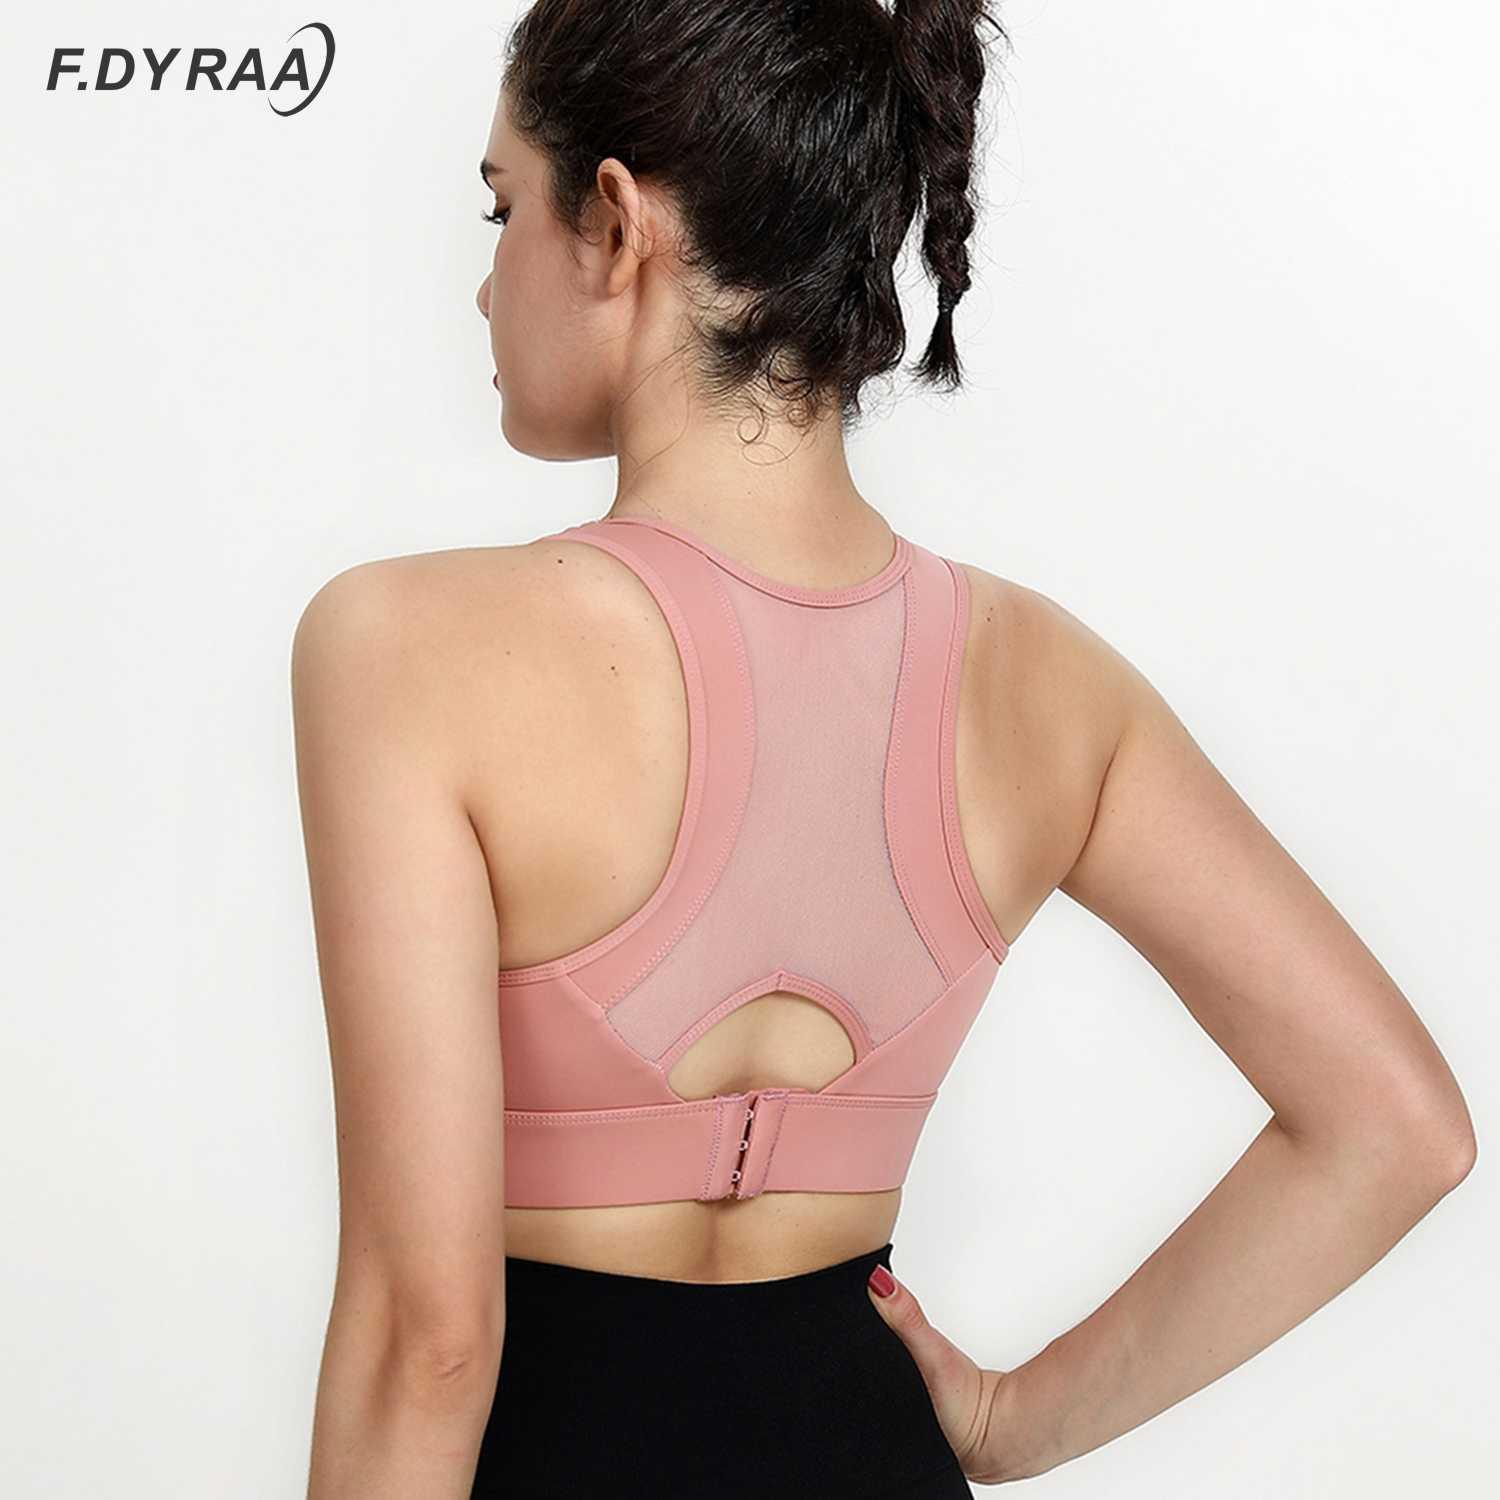 F. DYRAA SPORTBRA High Impact Support Femme Push-up Sexy Beautiful Back Yoga Top Top Top Top Workout Gymnase Concentrer sous-vêtements Borth